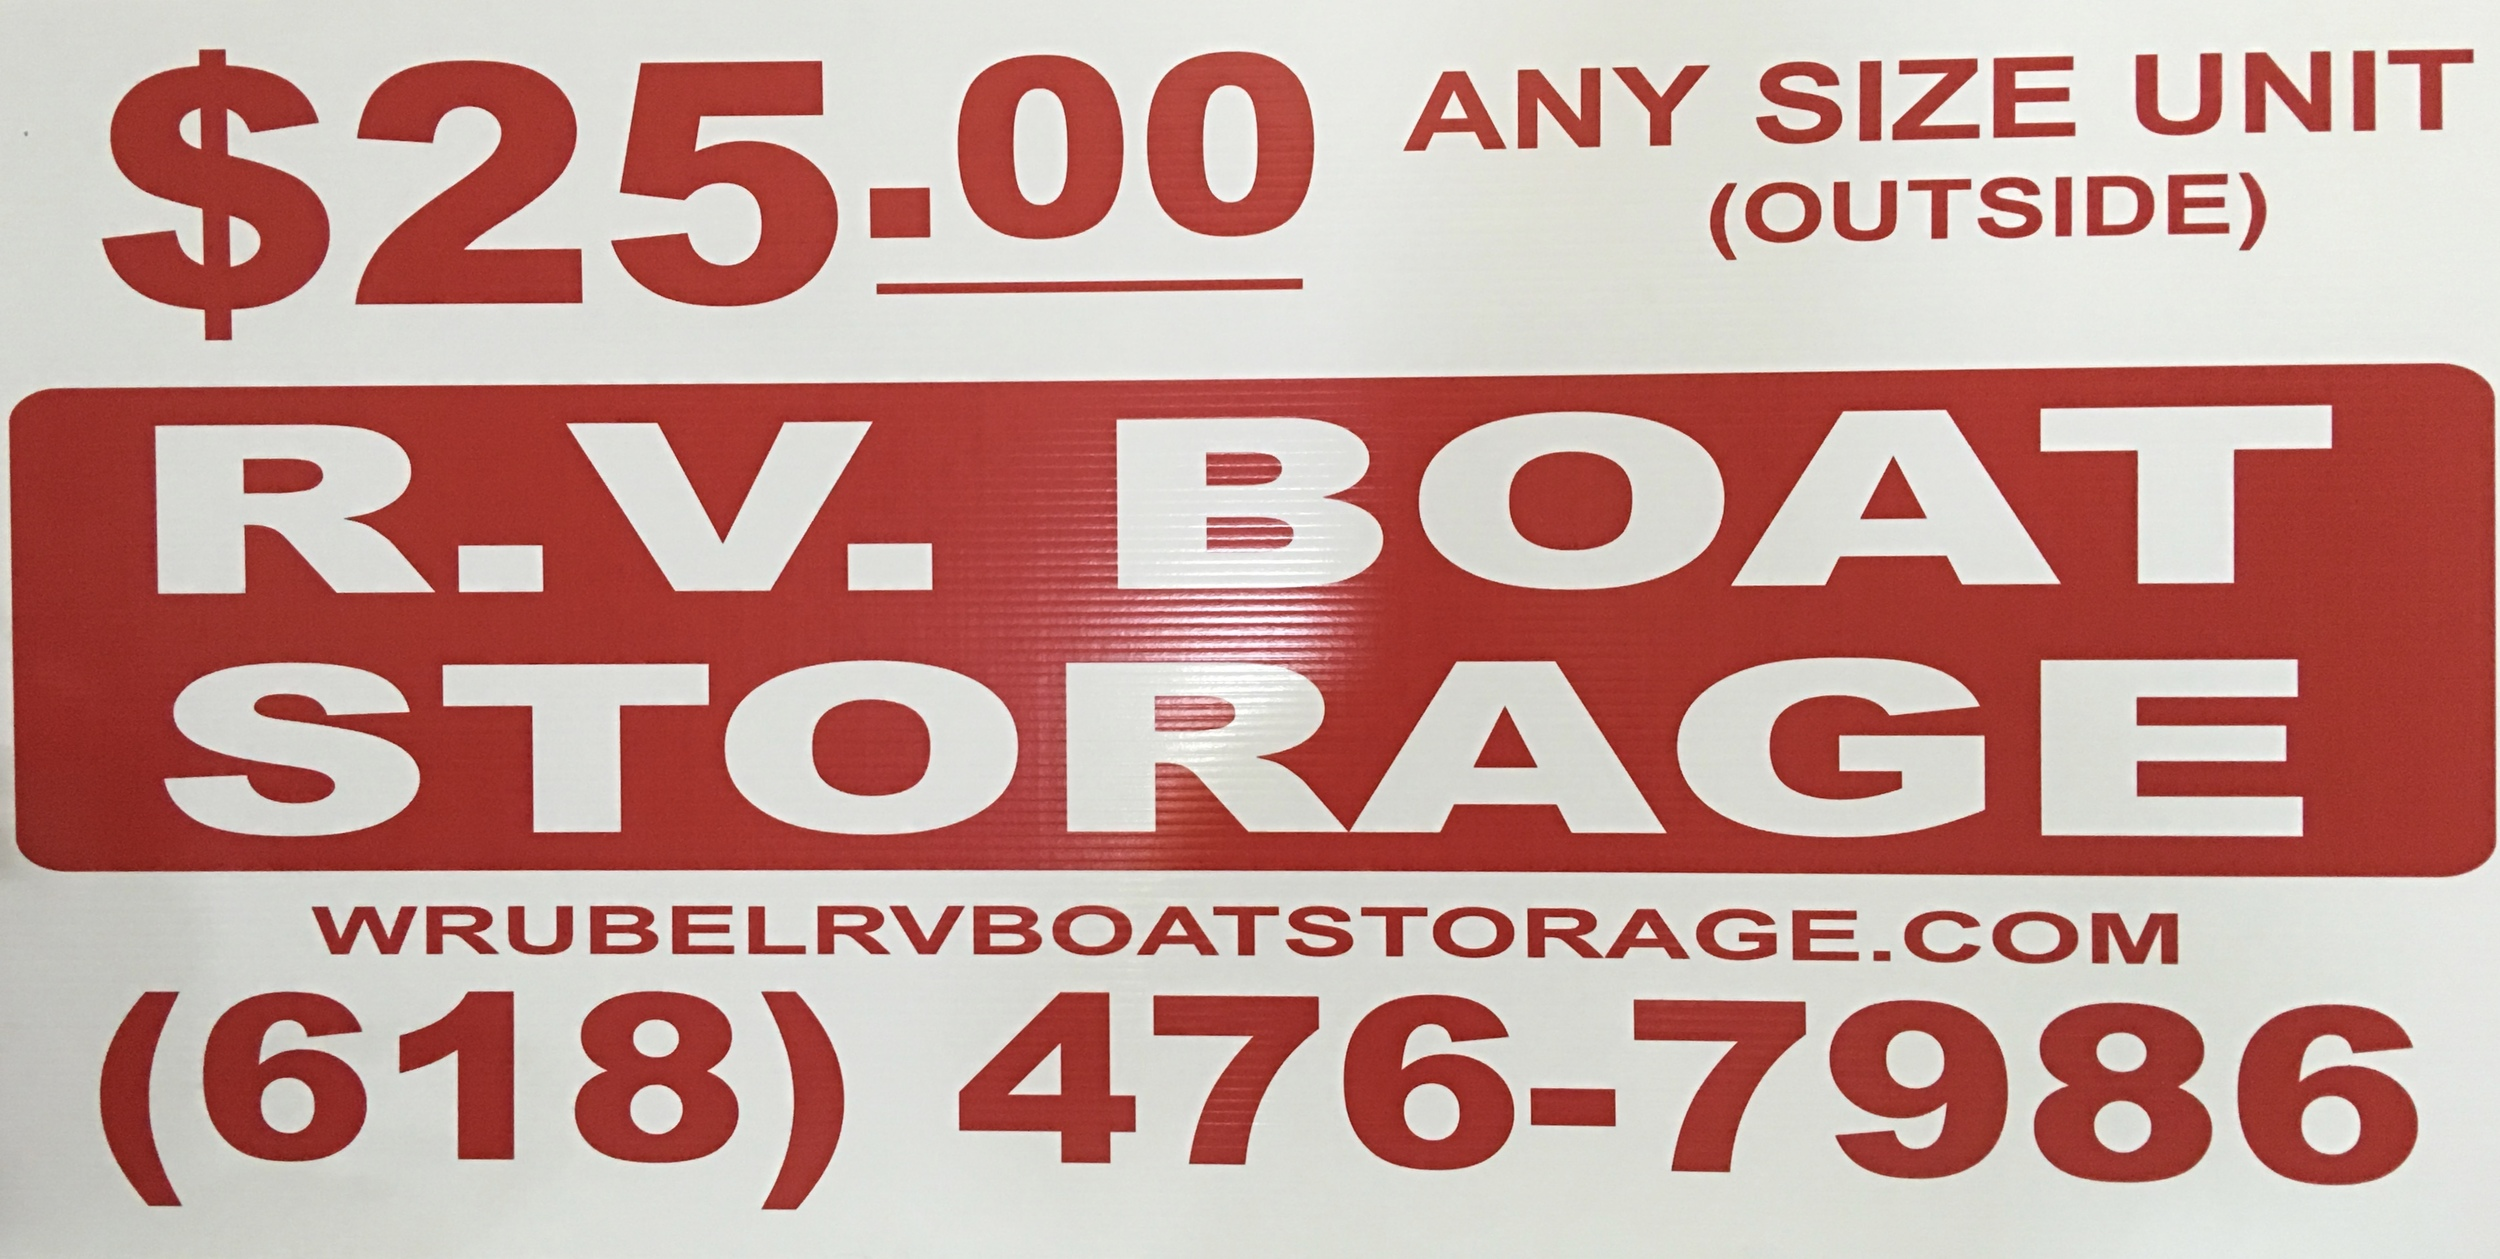 outside storage special - call for details